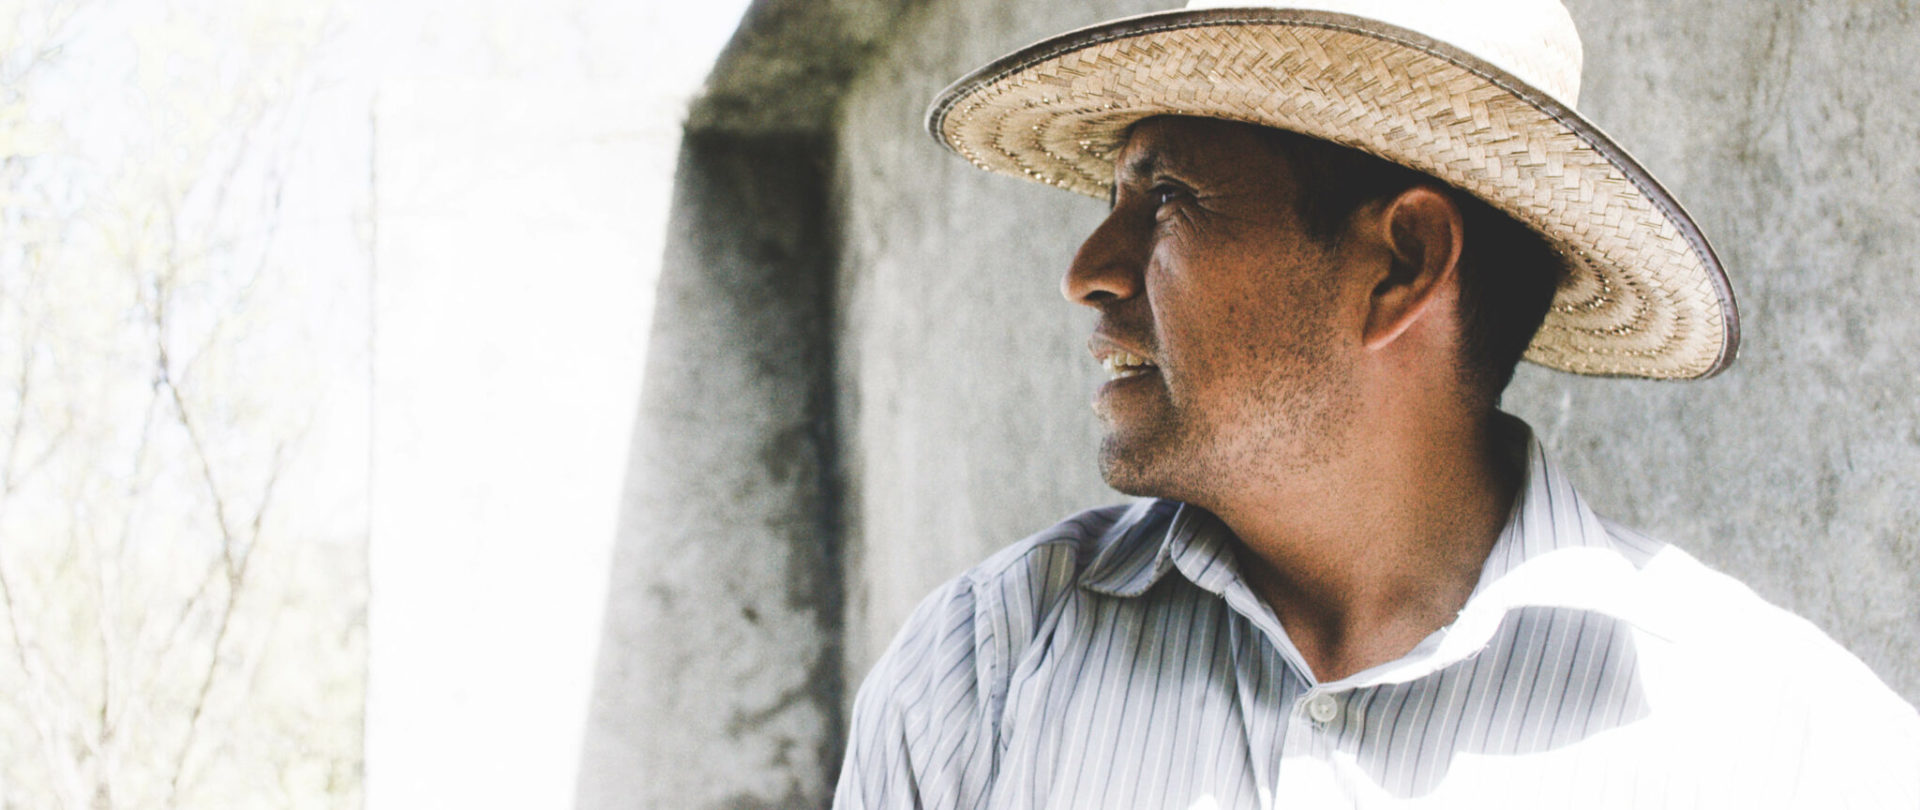 For many in the Oaxaca region, Including Alier, providing for ones family often means choosing between staying close to home and struggling to farm or migrating far from home to find work in the city.